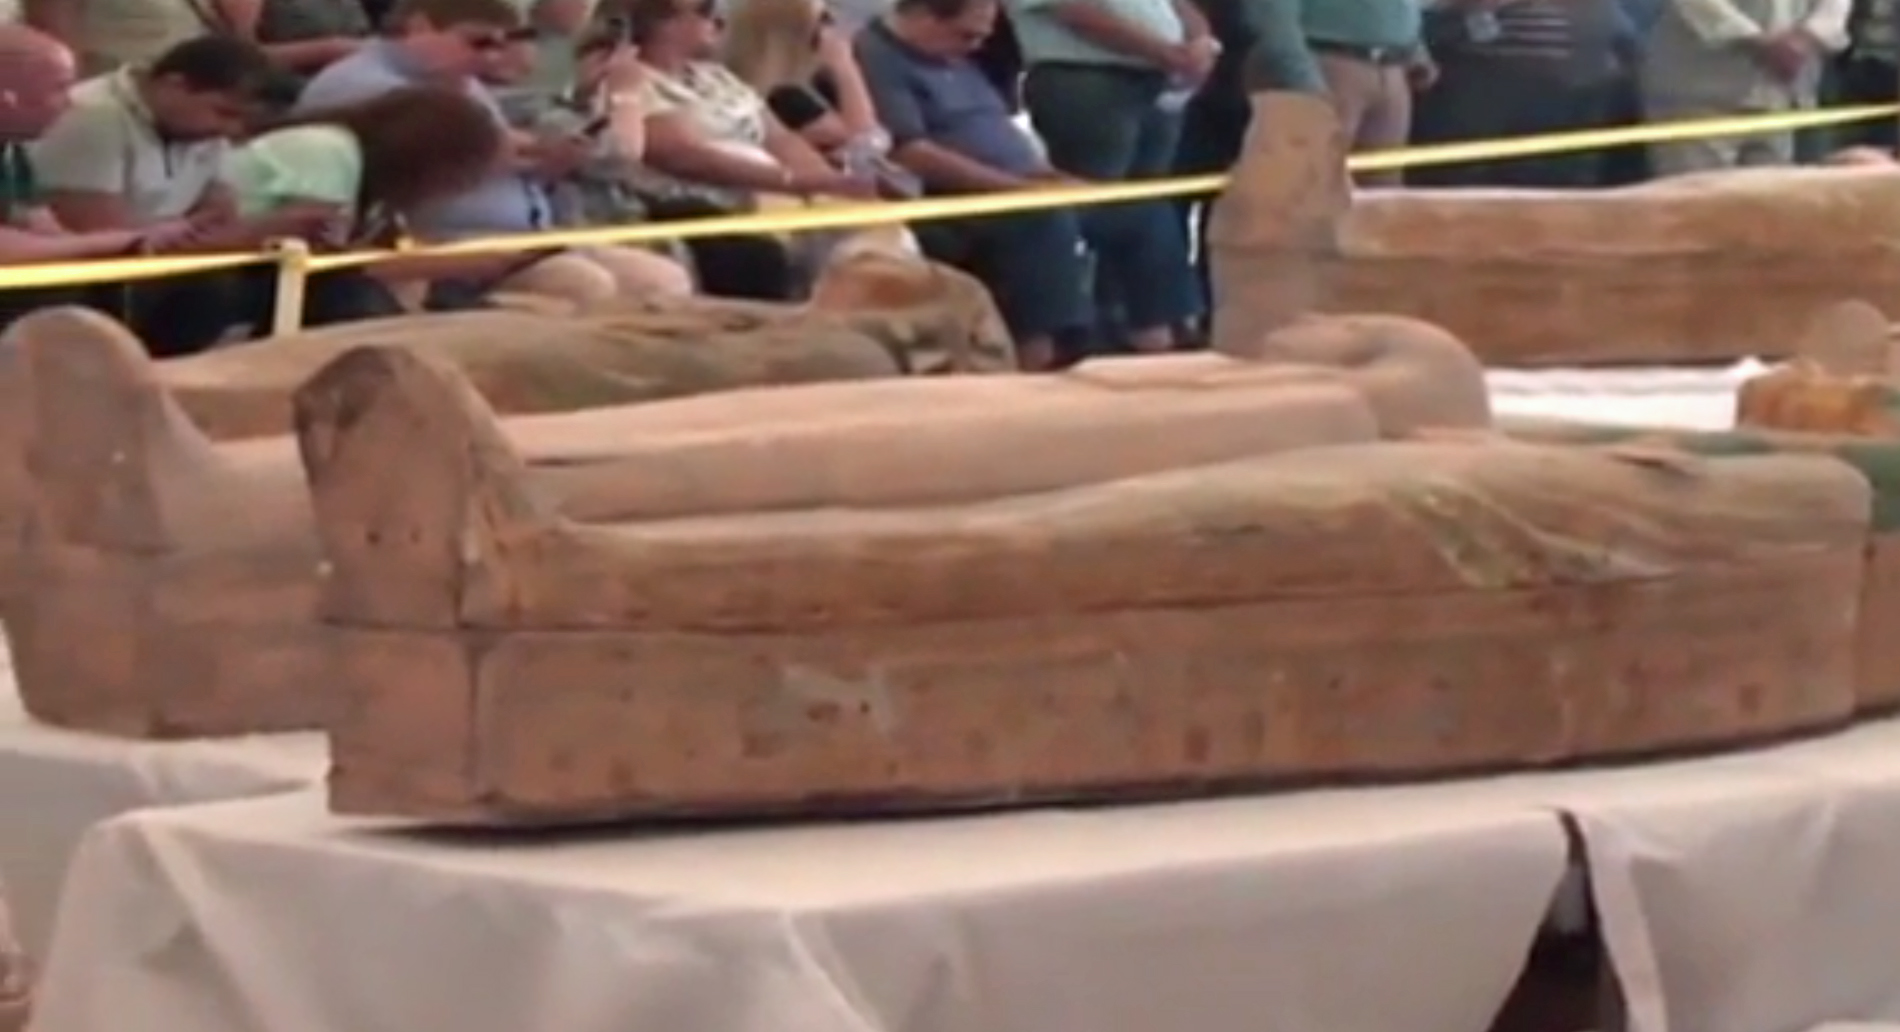 Some of 30 ancient coffins with mummies inside that Egypt unveiled on Oct. 18, 2019, in Luxor, Egypt. (Credit: EGYPTIAN TV via CNN)